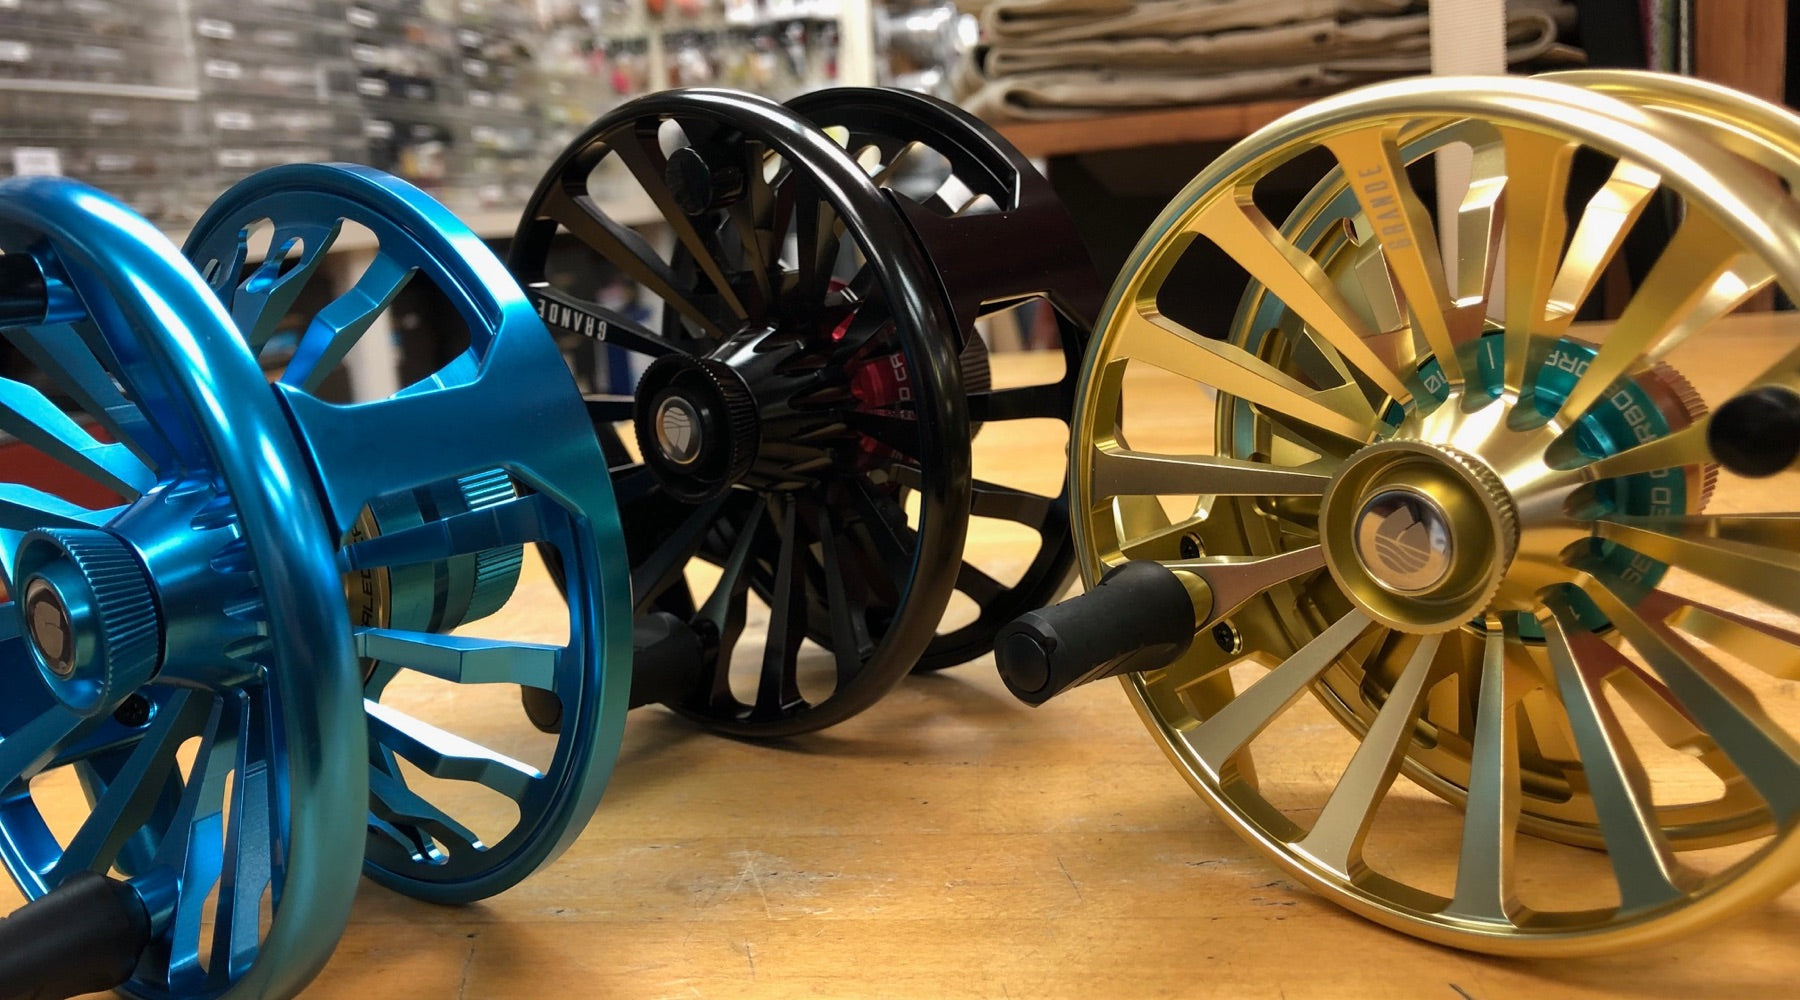 Redington Grande Fly Reel Review 2